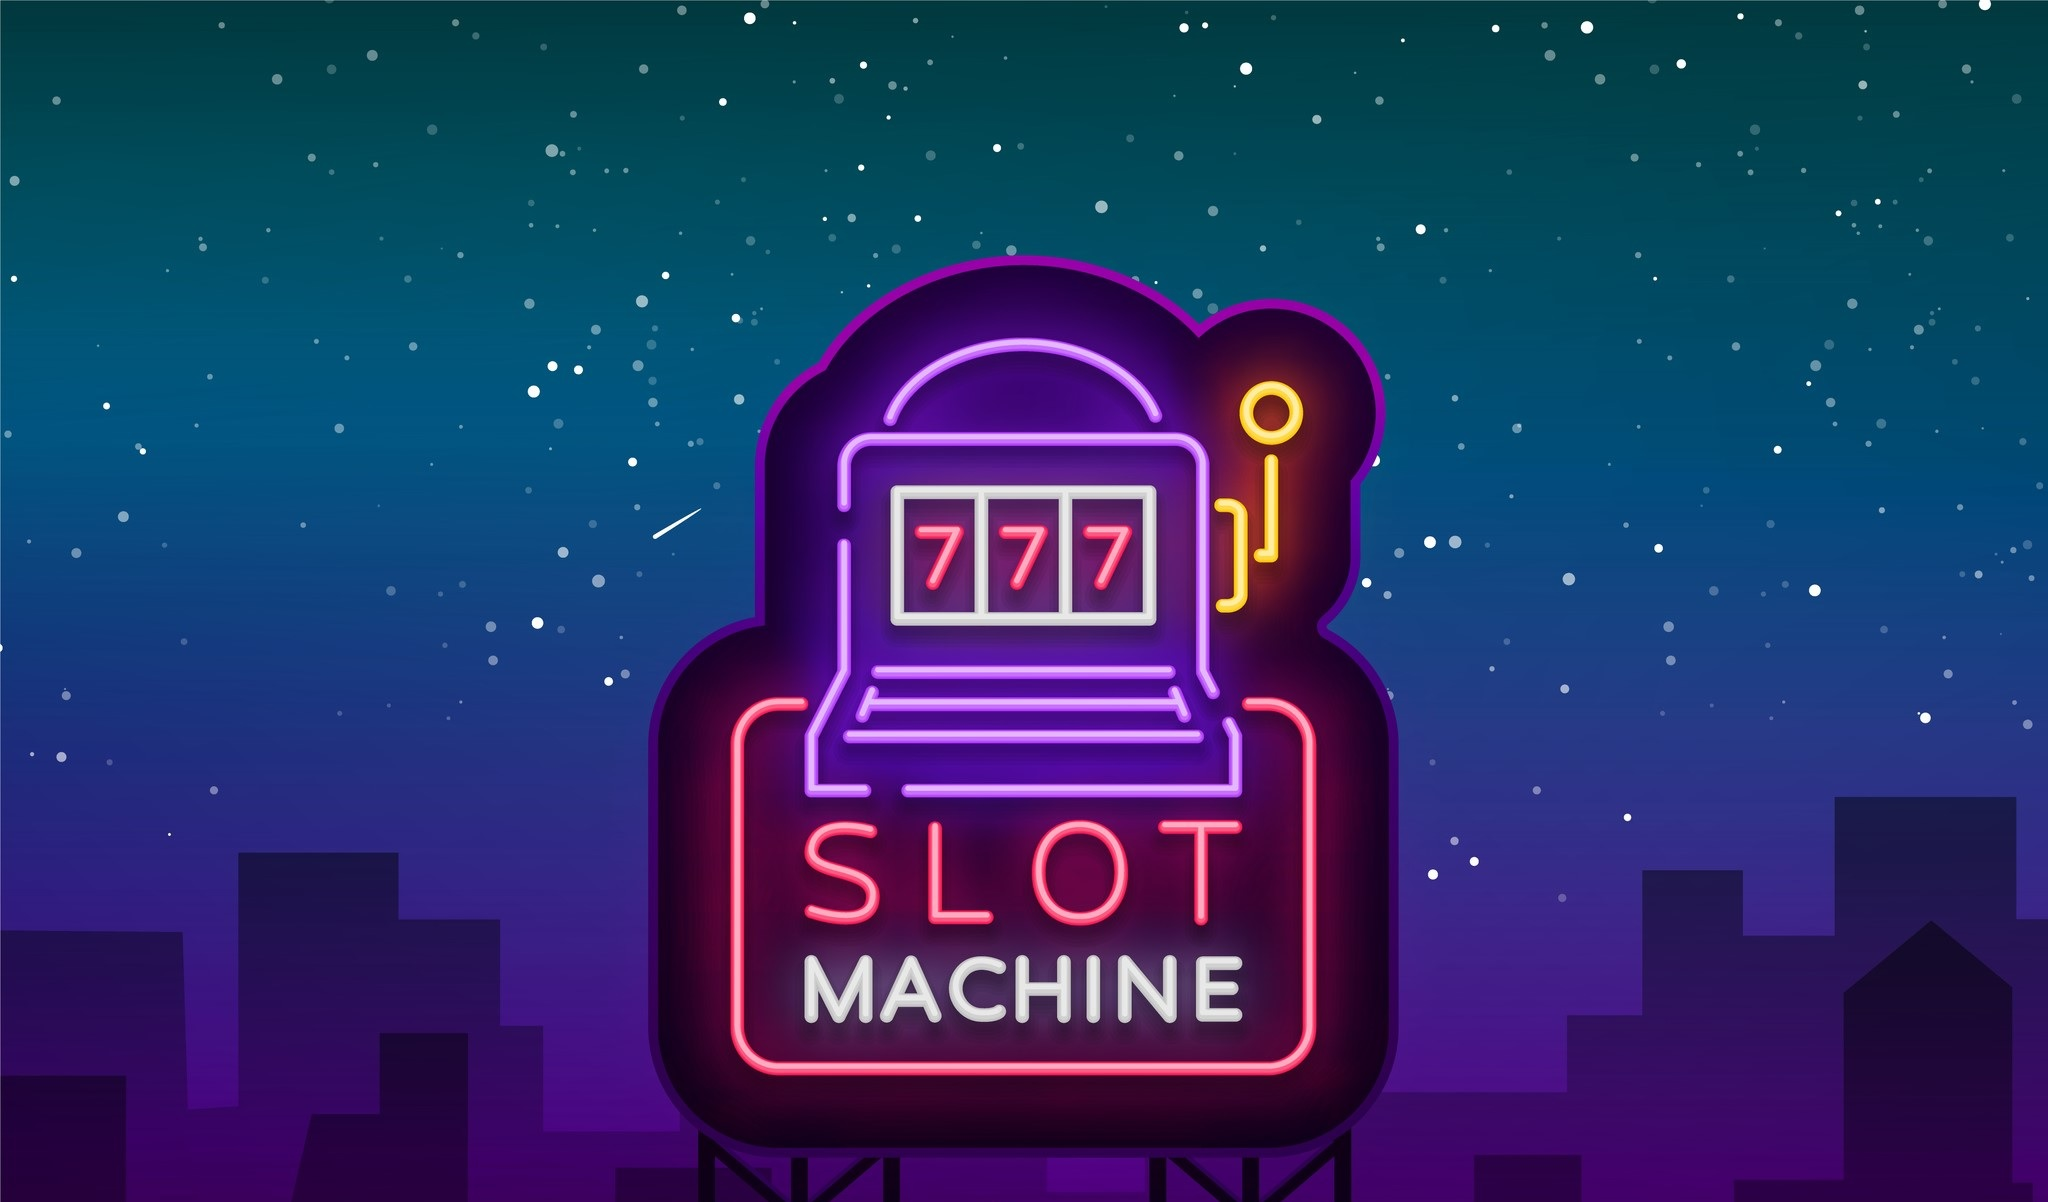 How much money can you win at online slots?